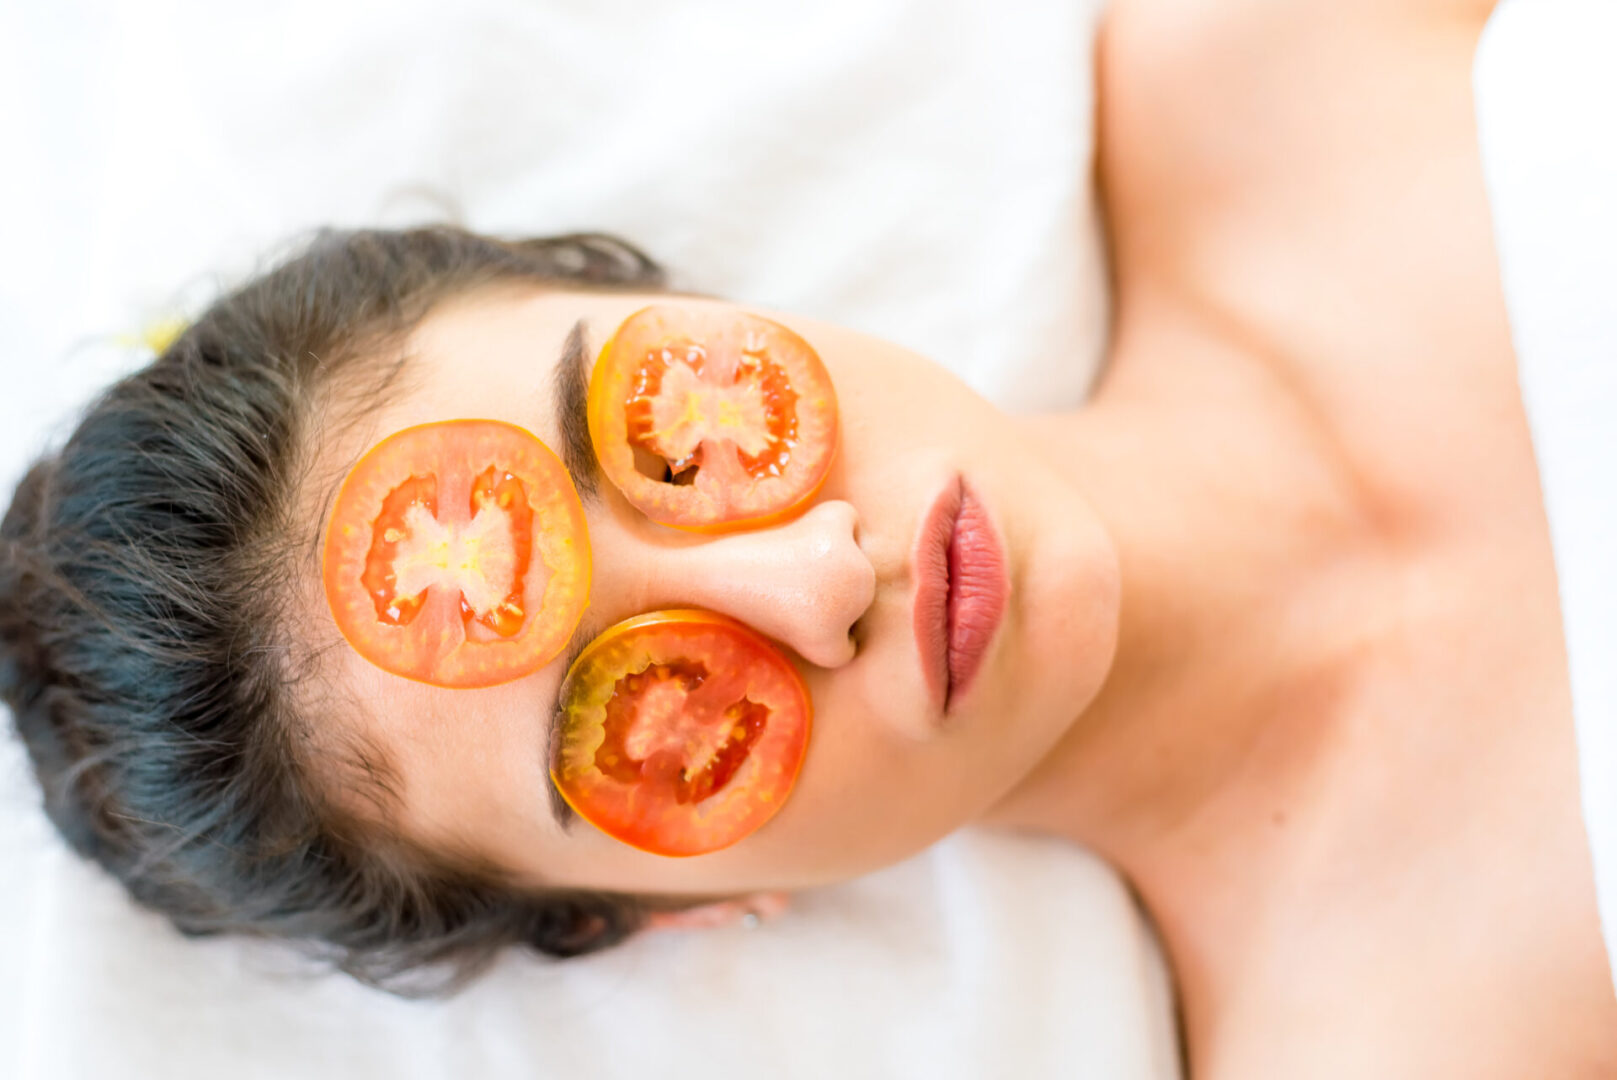 Skin and tomatoes